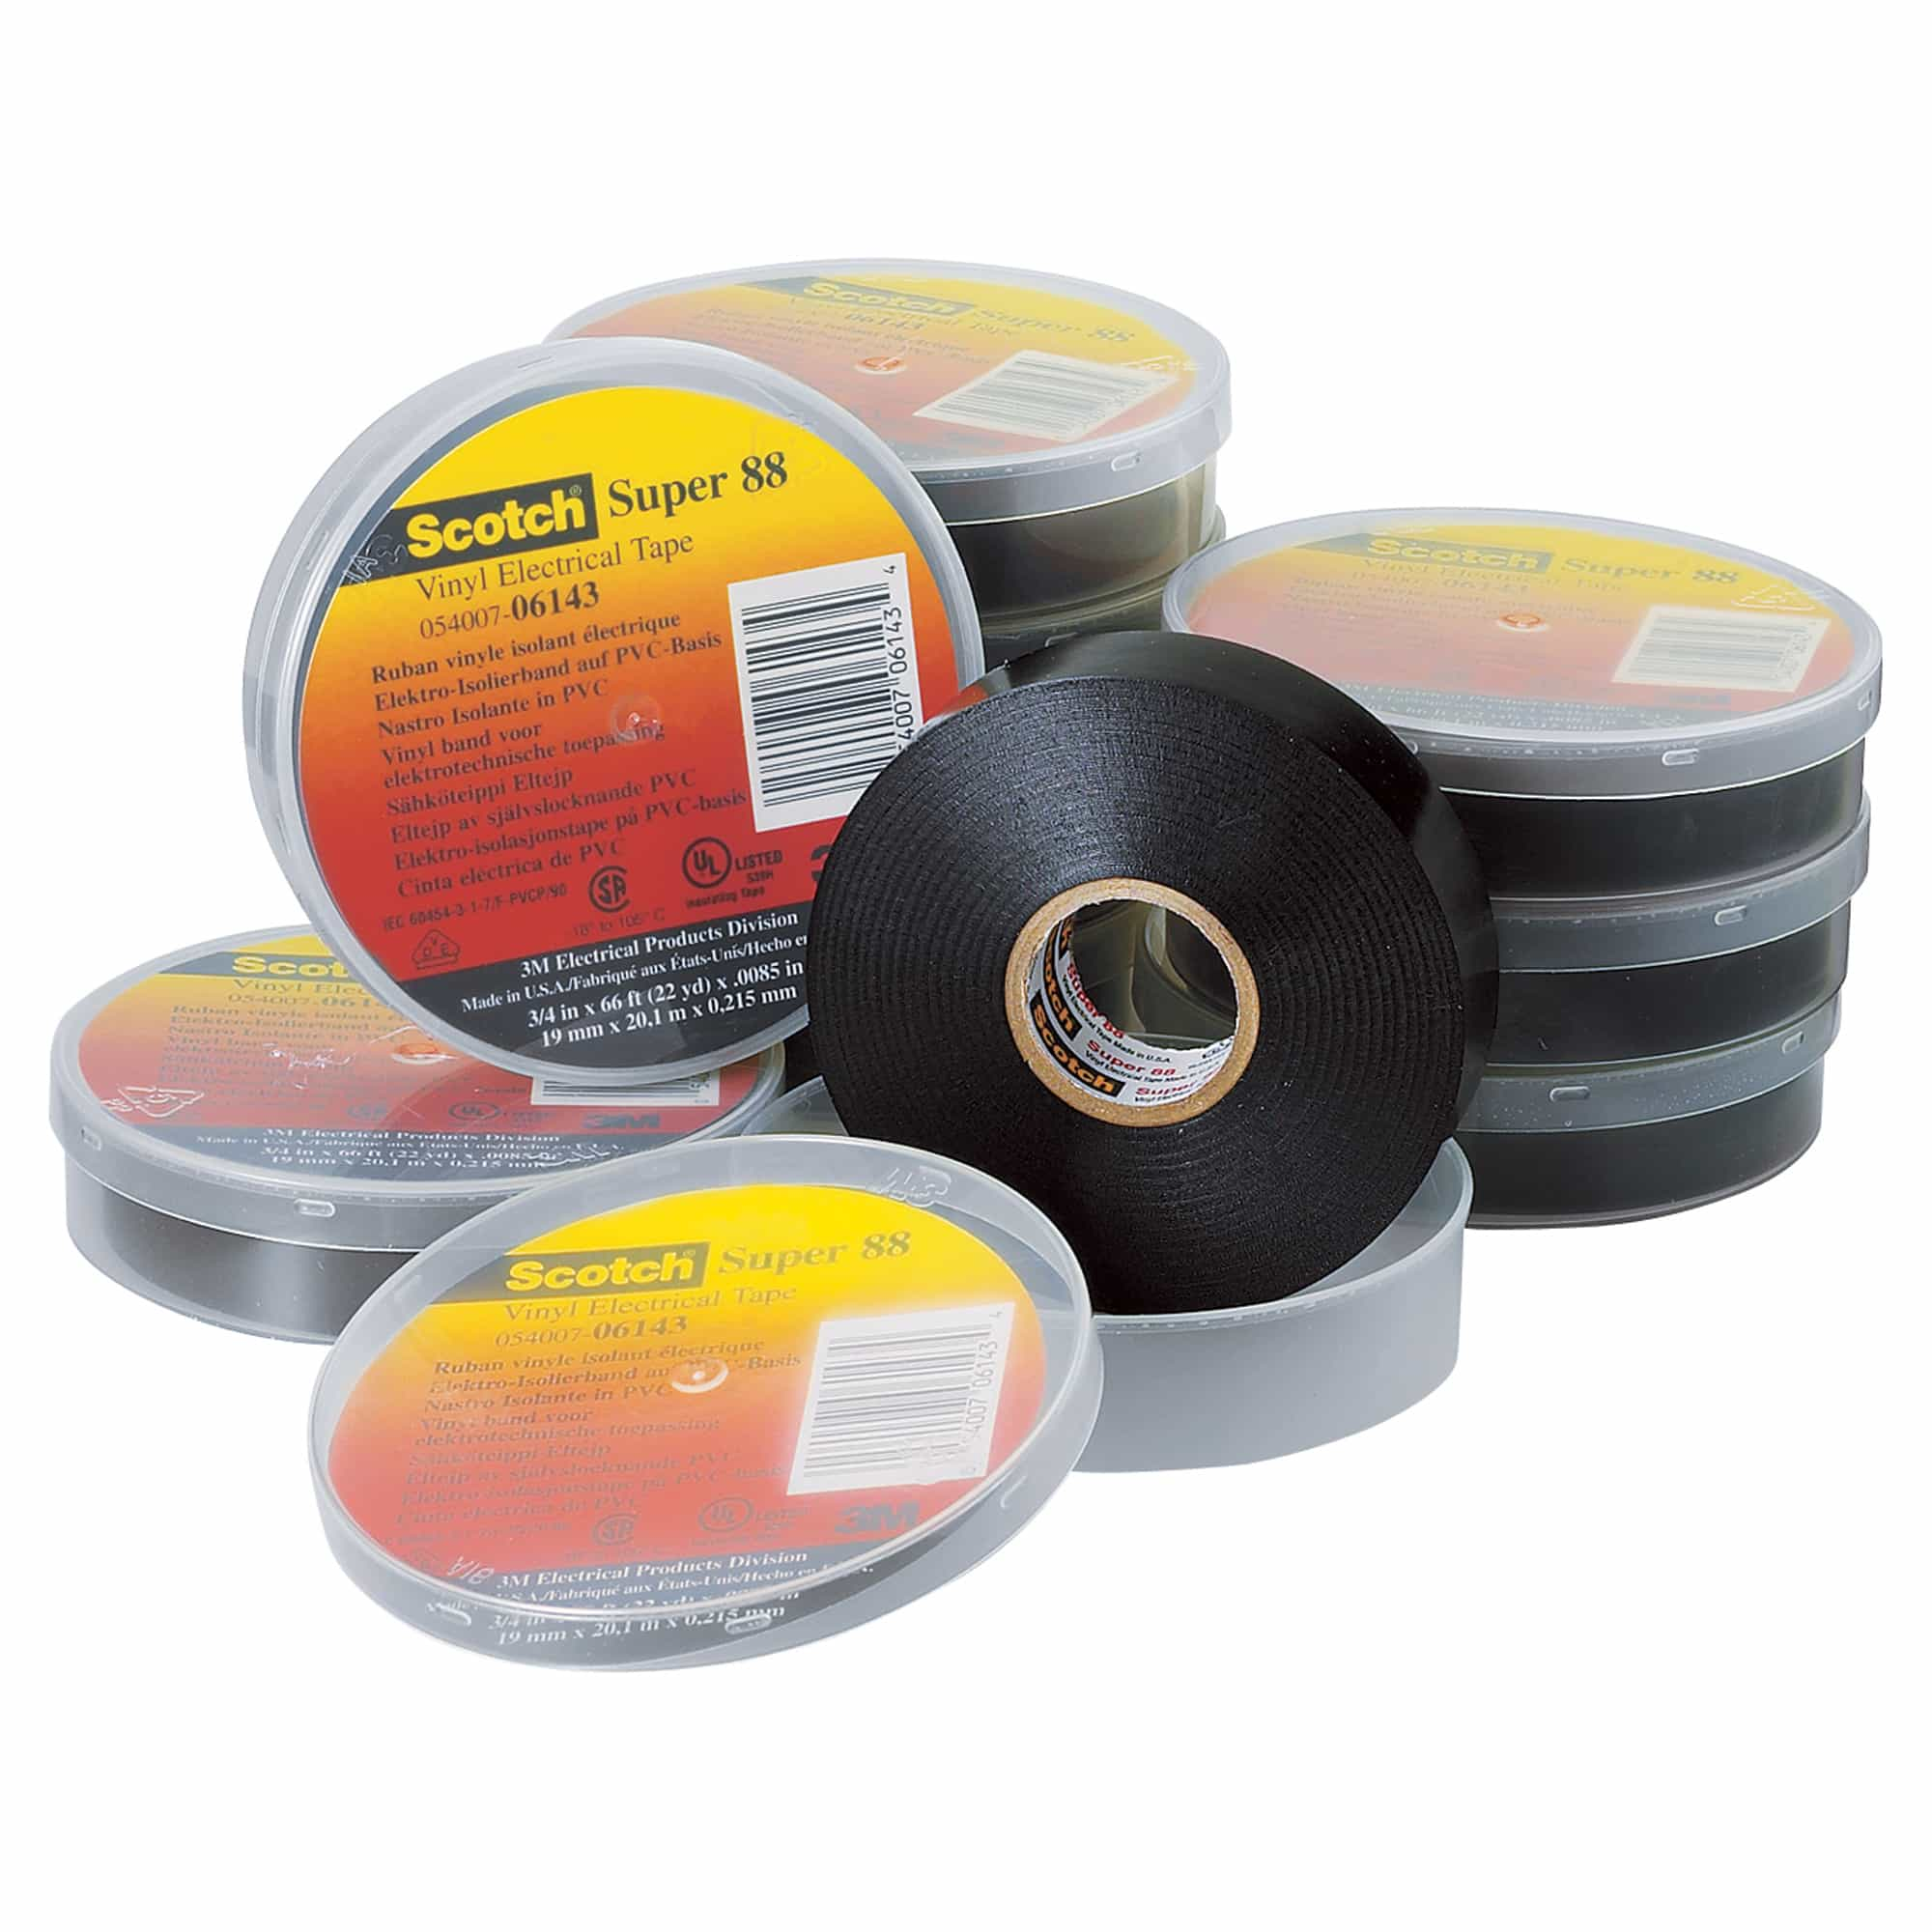 3M Scotch Electrical Tapes | PVC Vinyl Insulating Tapes